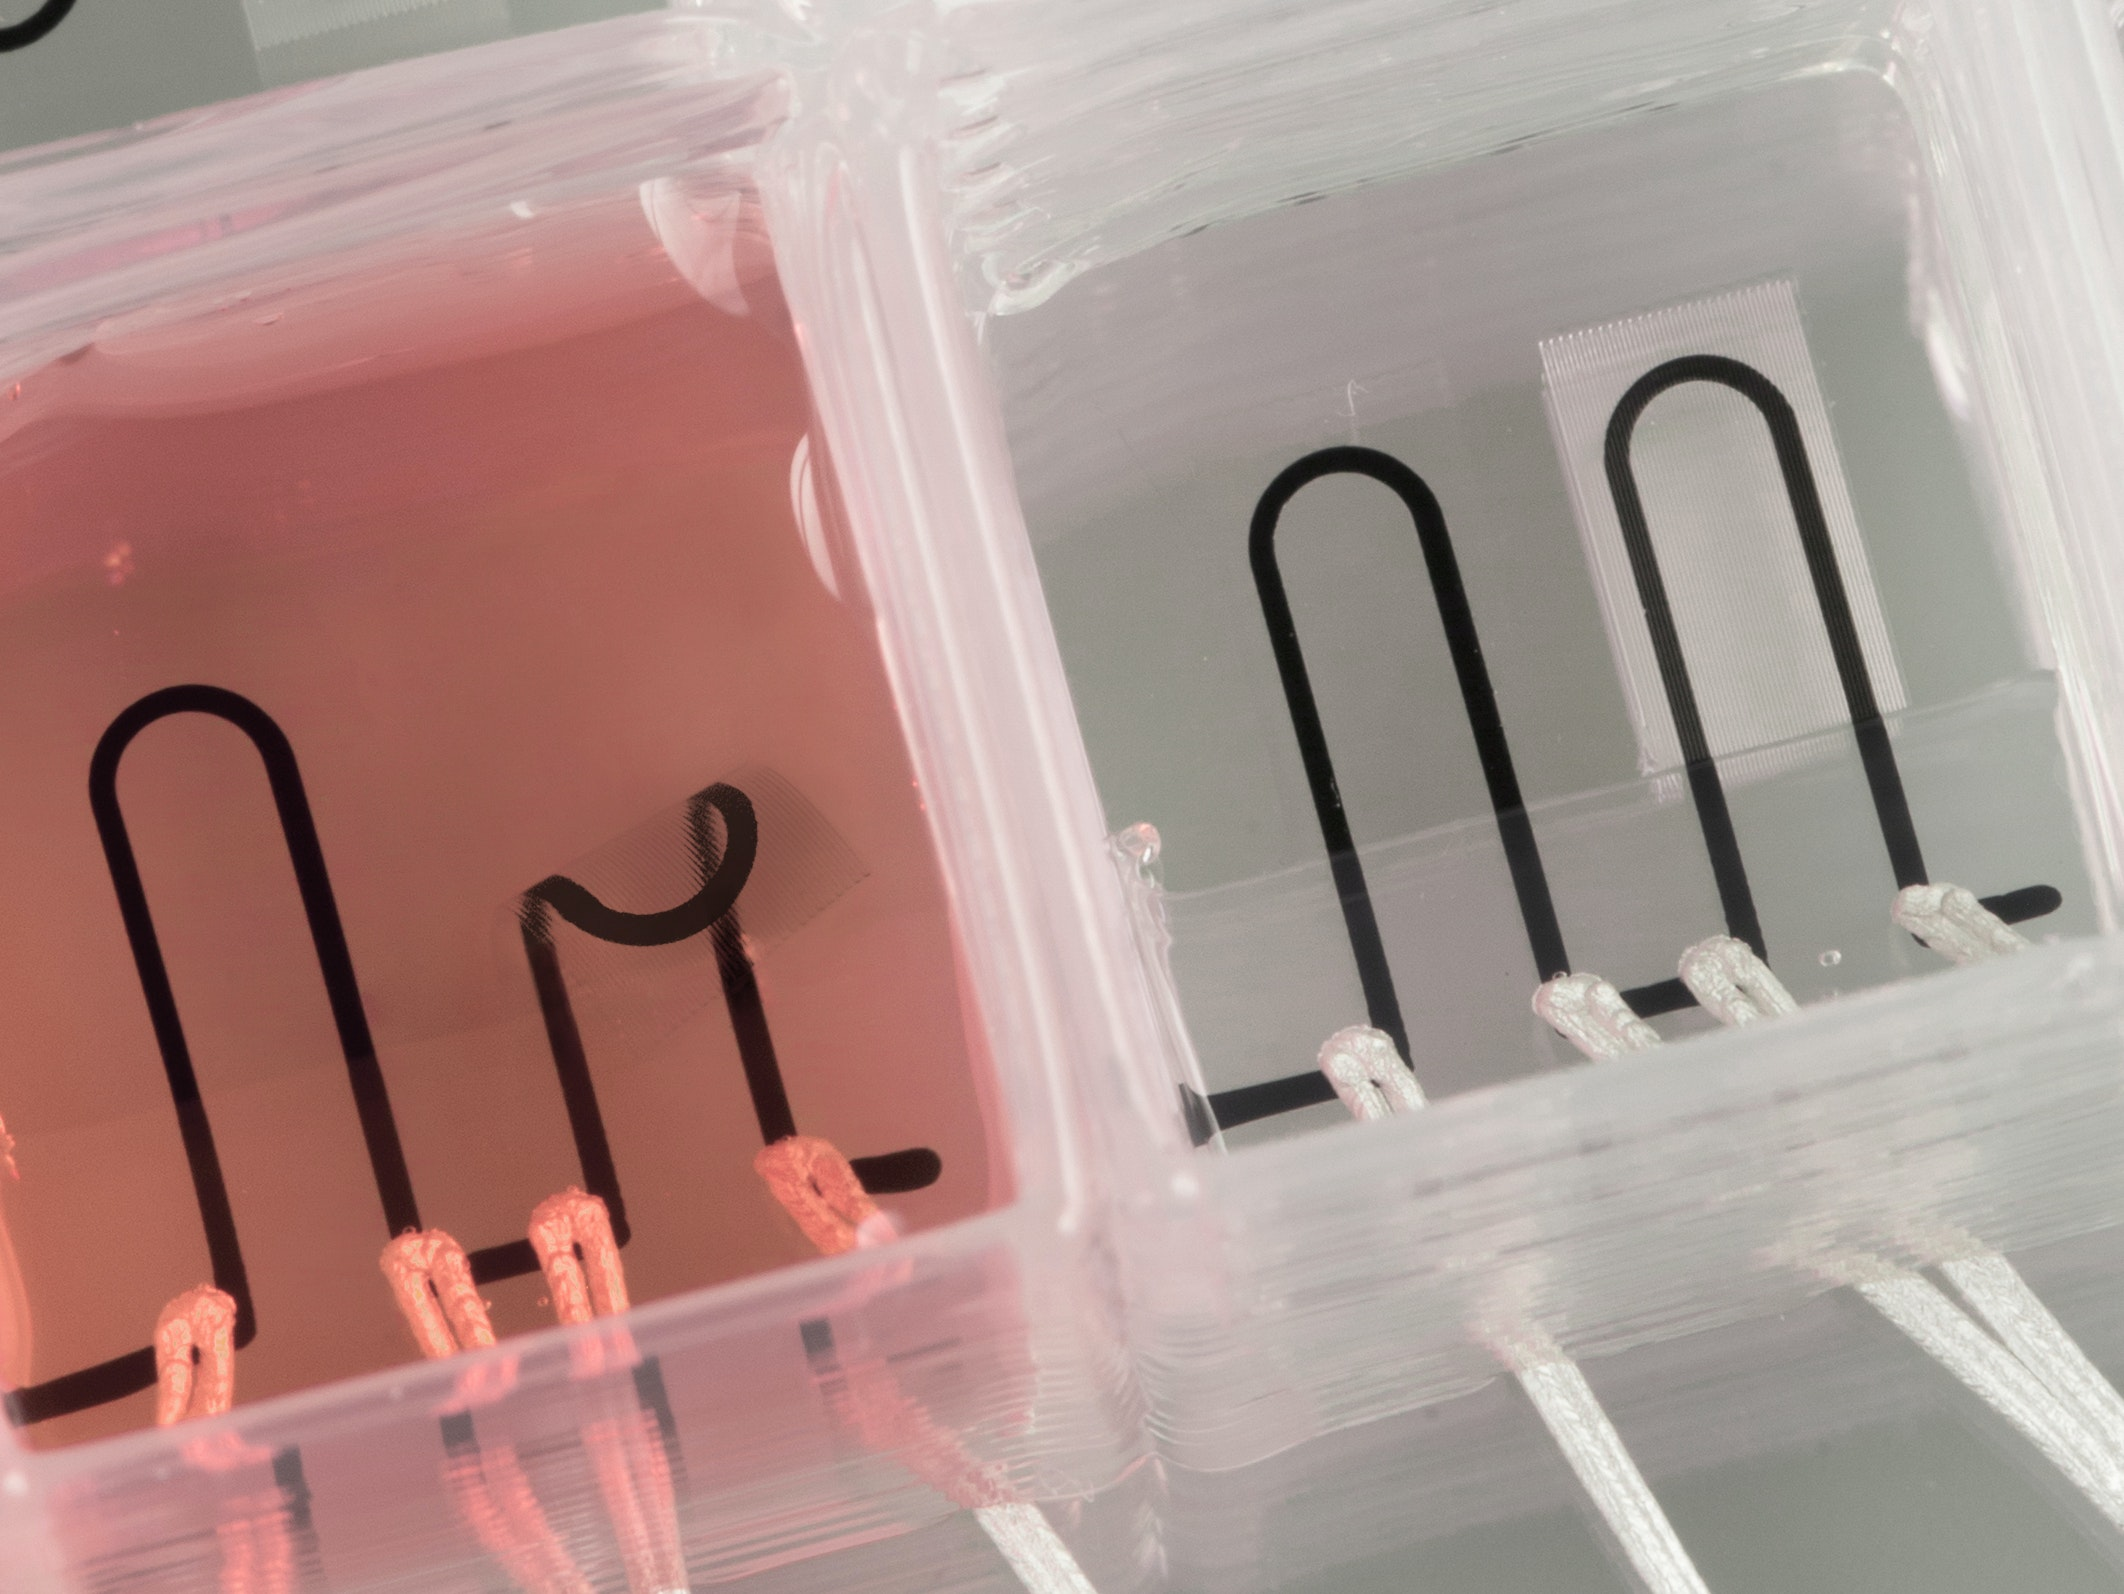 Harvard's Heart-on-a-Chip Is the Future of Medical Studies